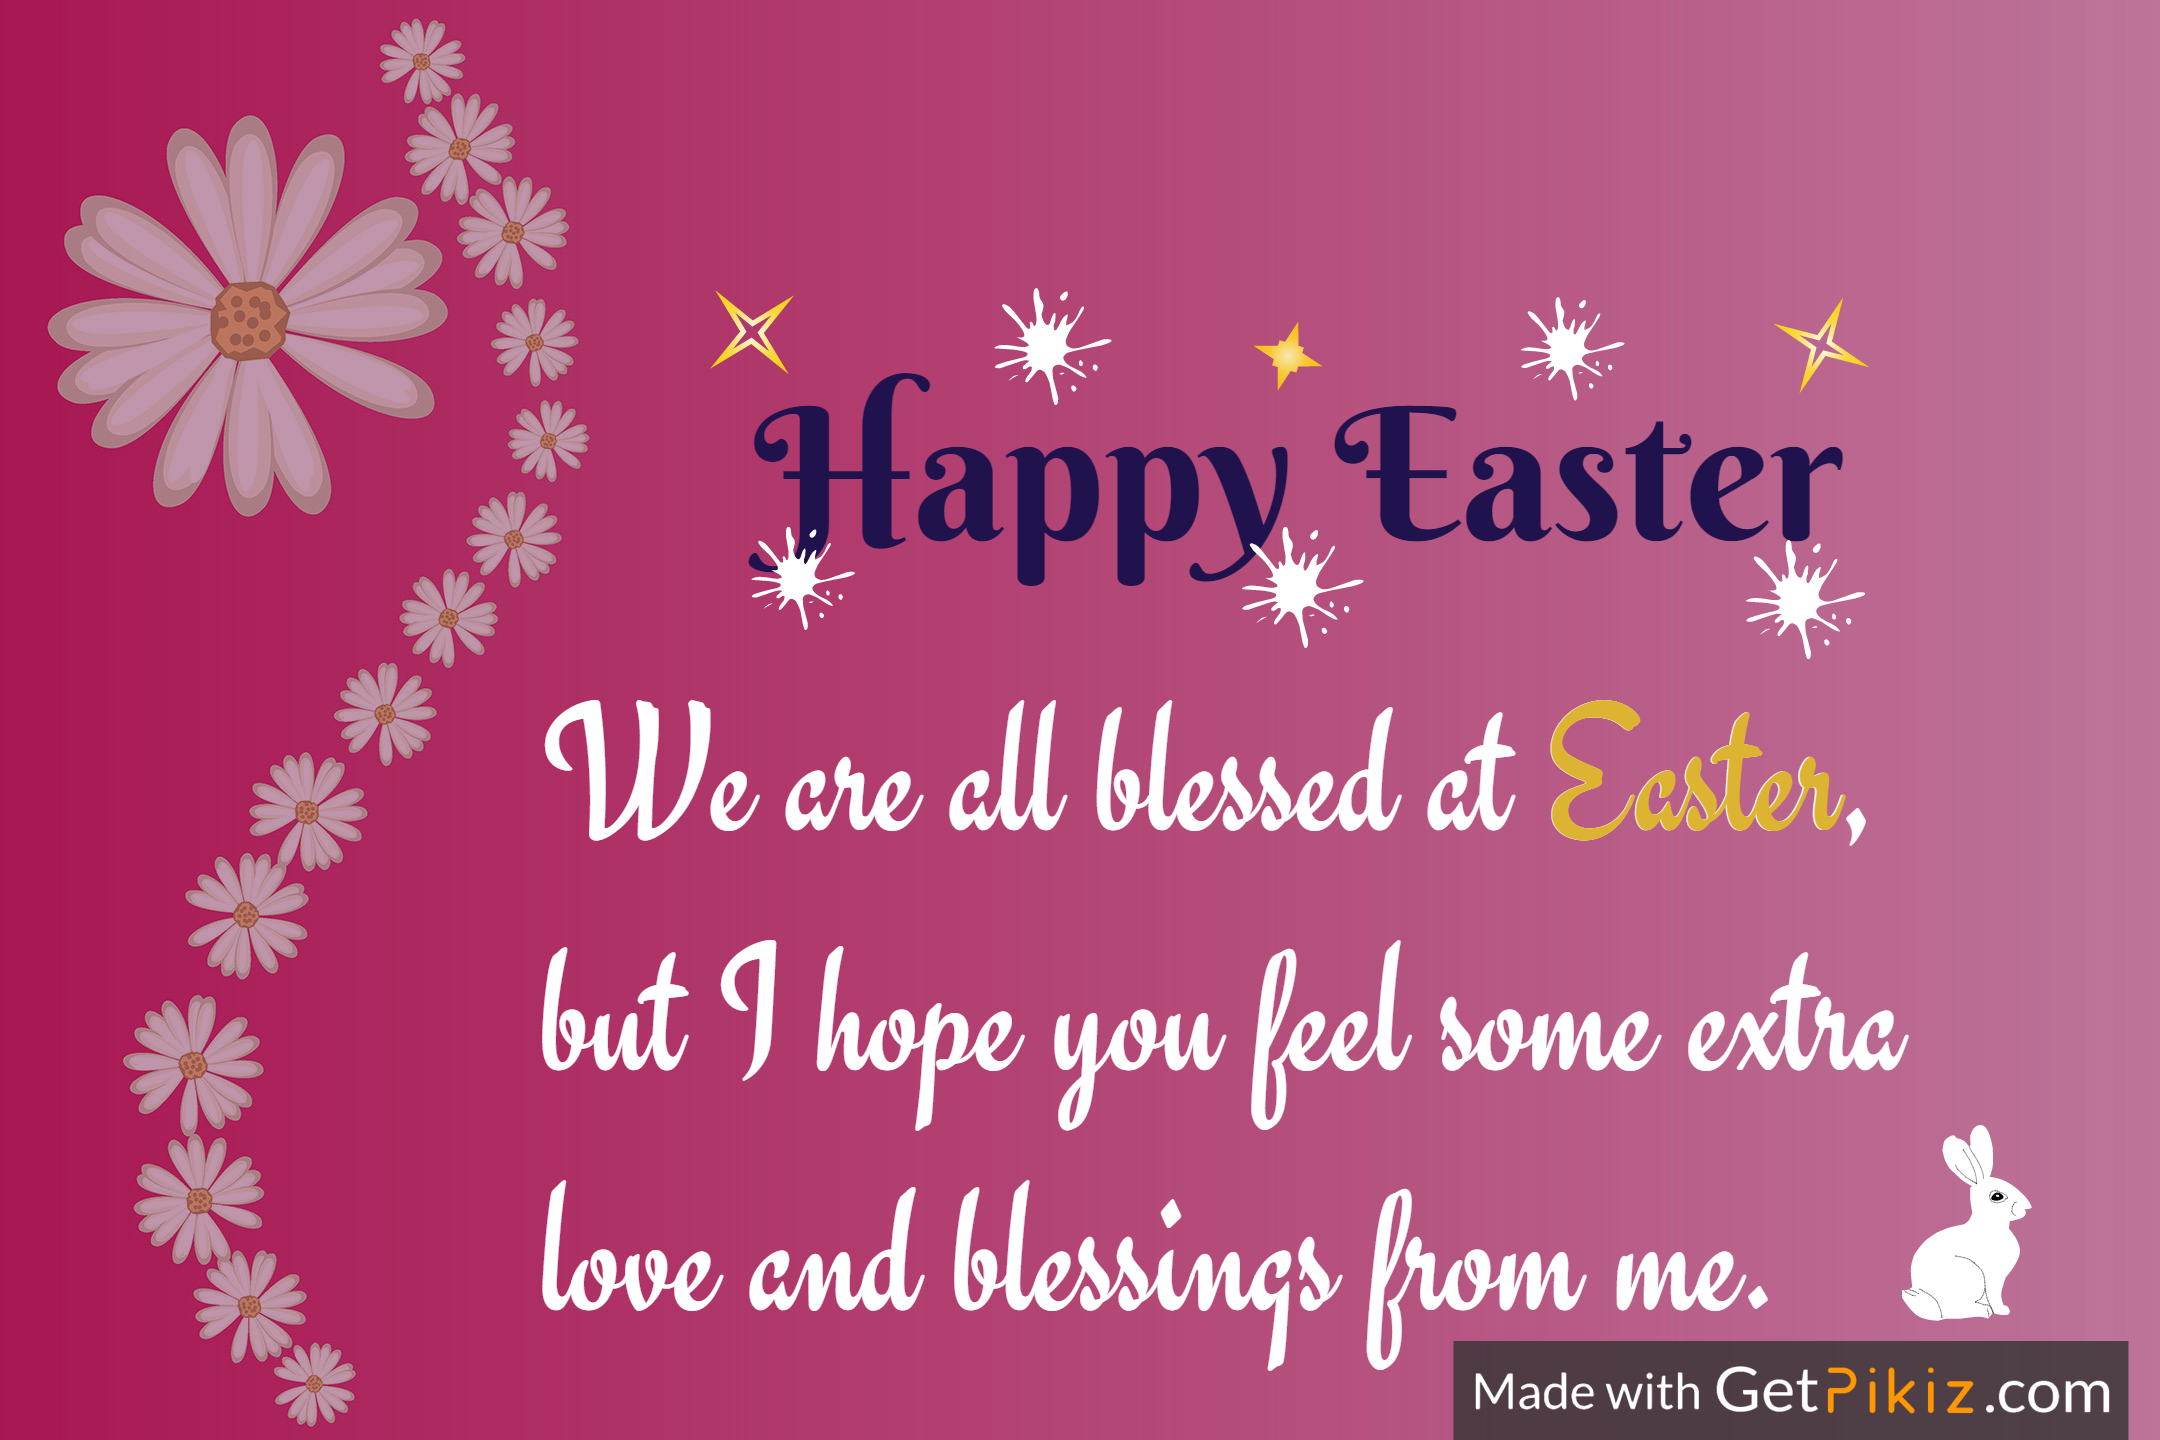 We are all blessed at Easter, but I hope you feel some extra  love and blessings from me. Easter Happy Easter